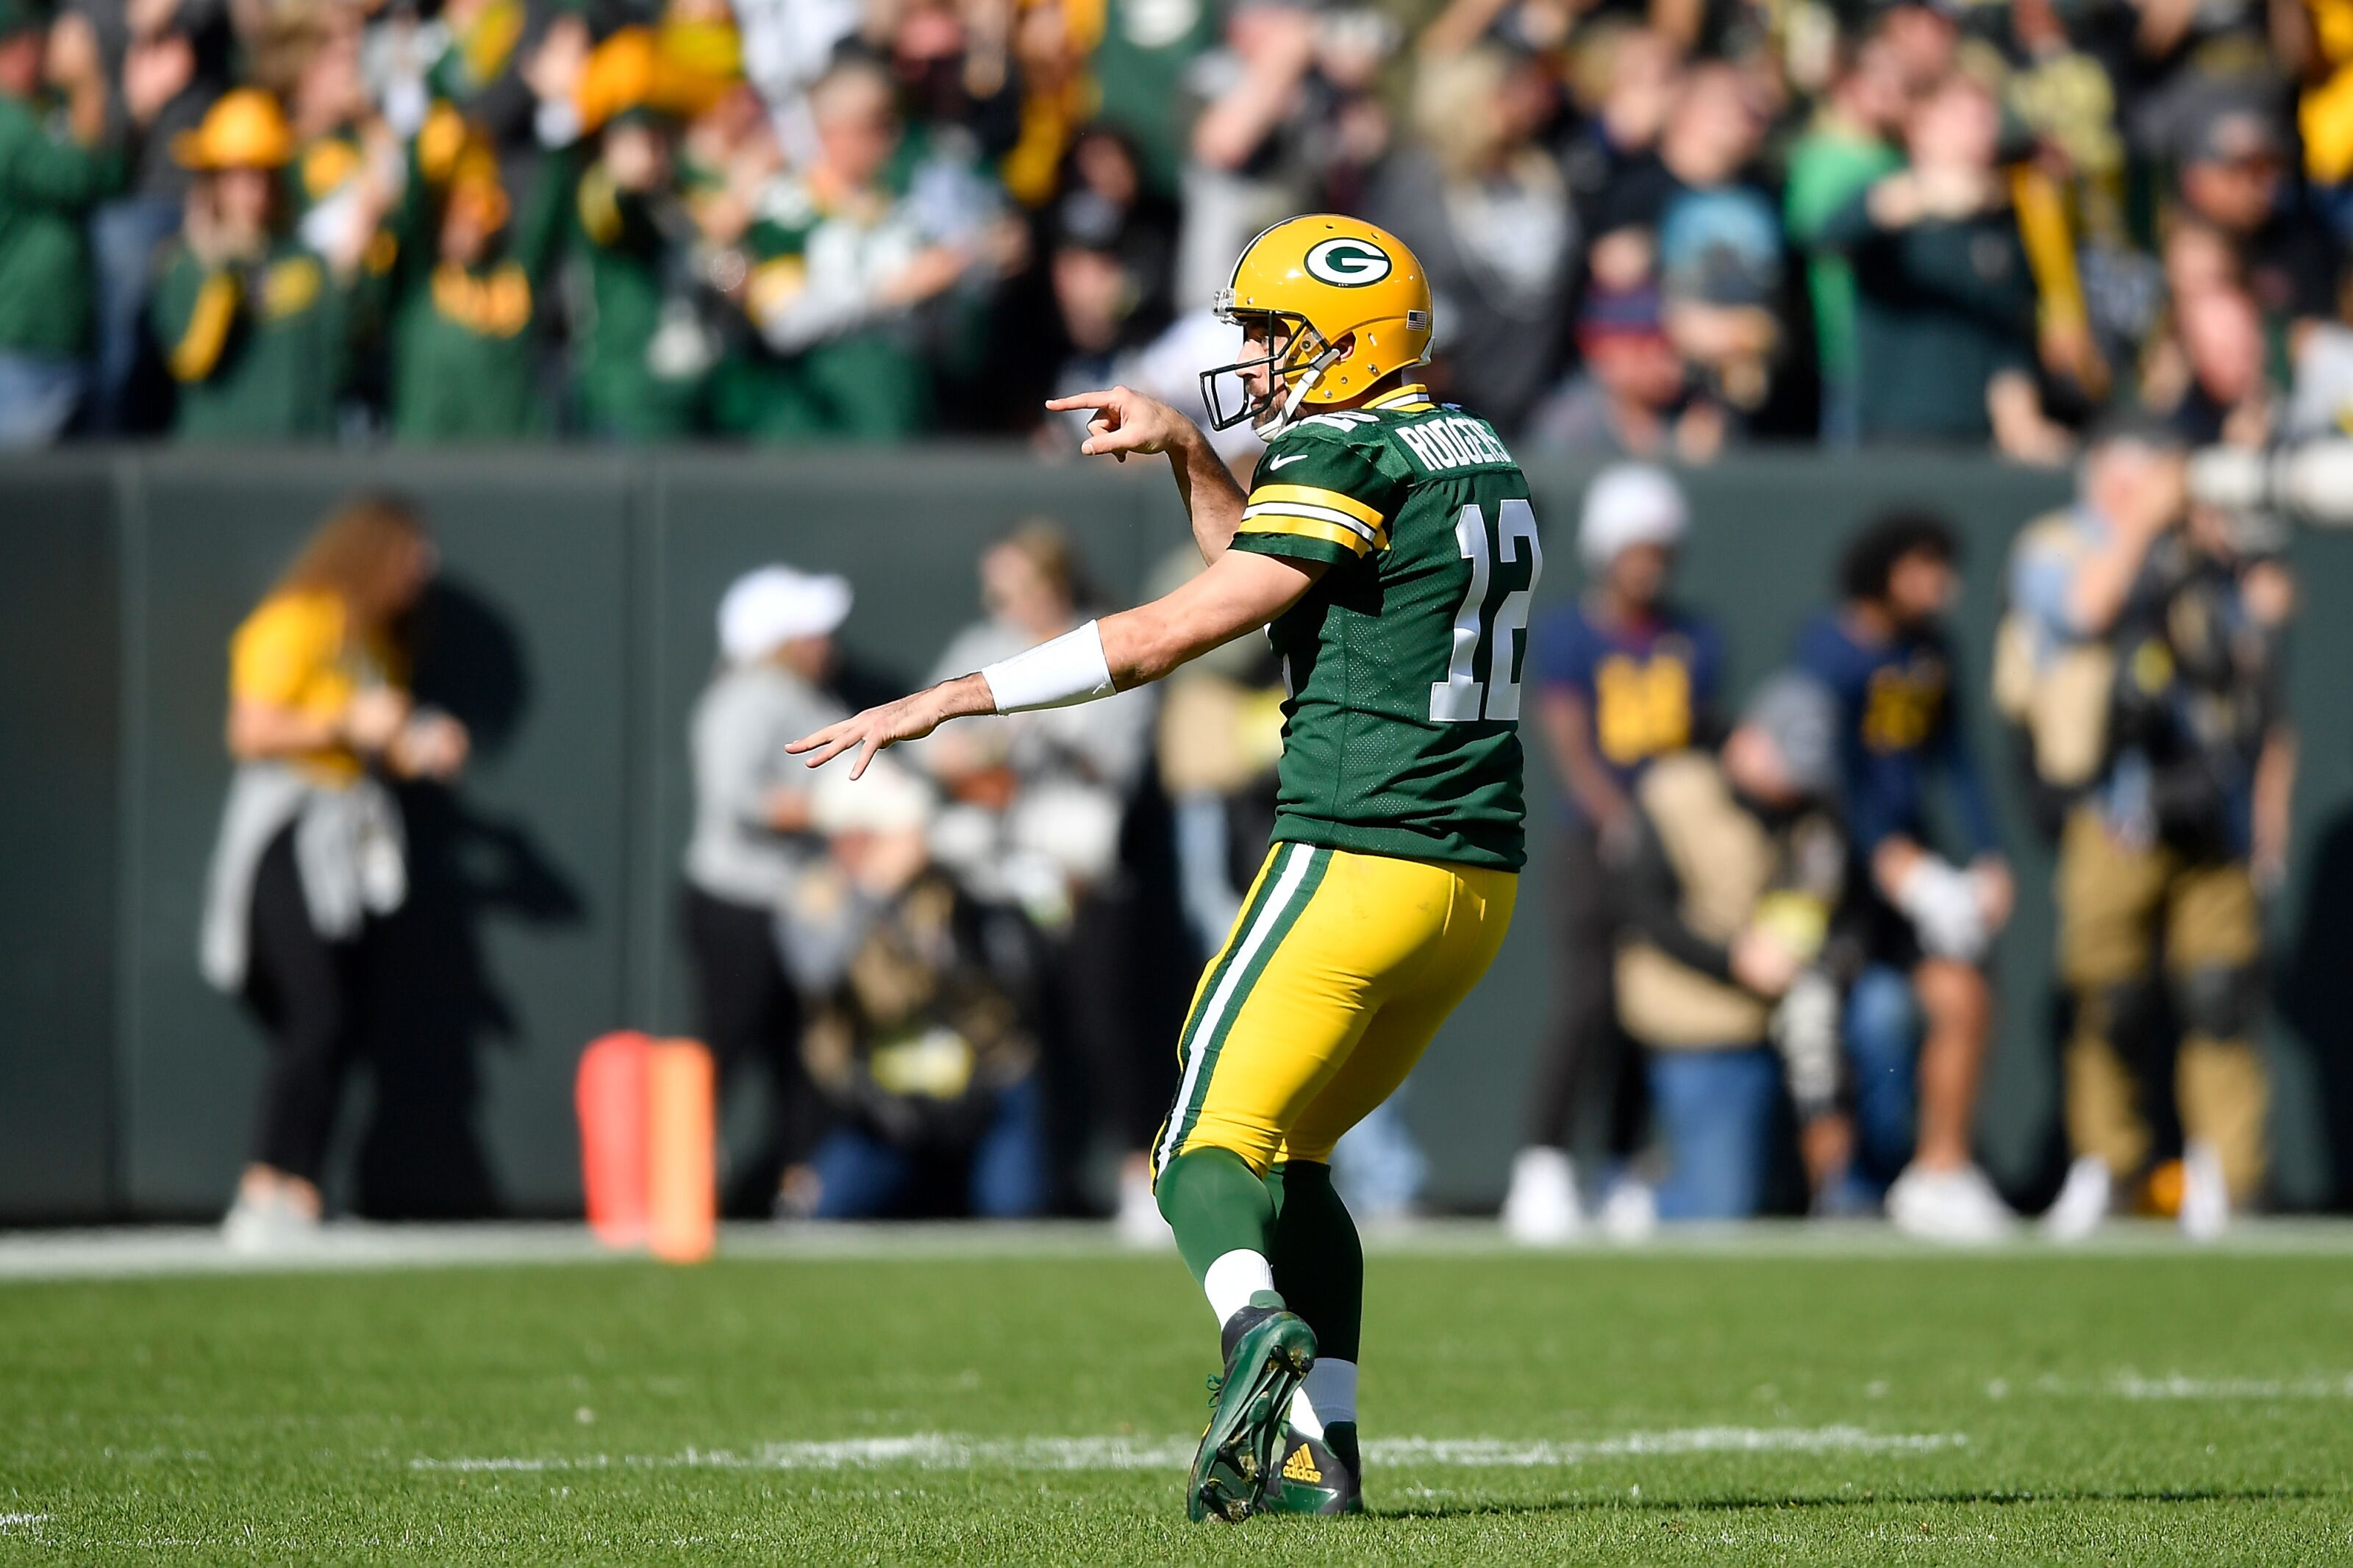 Green Bay Packers v. Oakland: The Good, the Bad & the Ugly